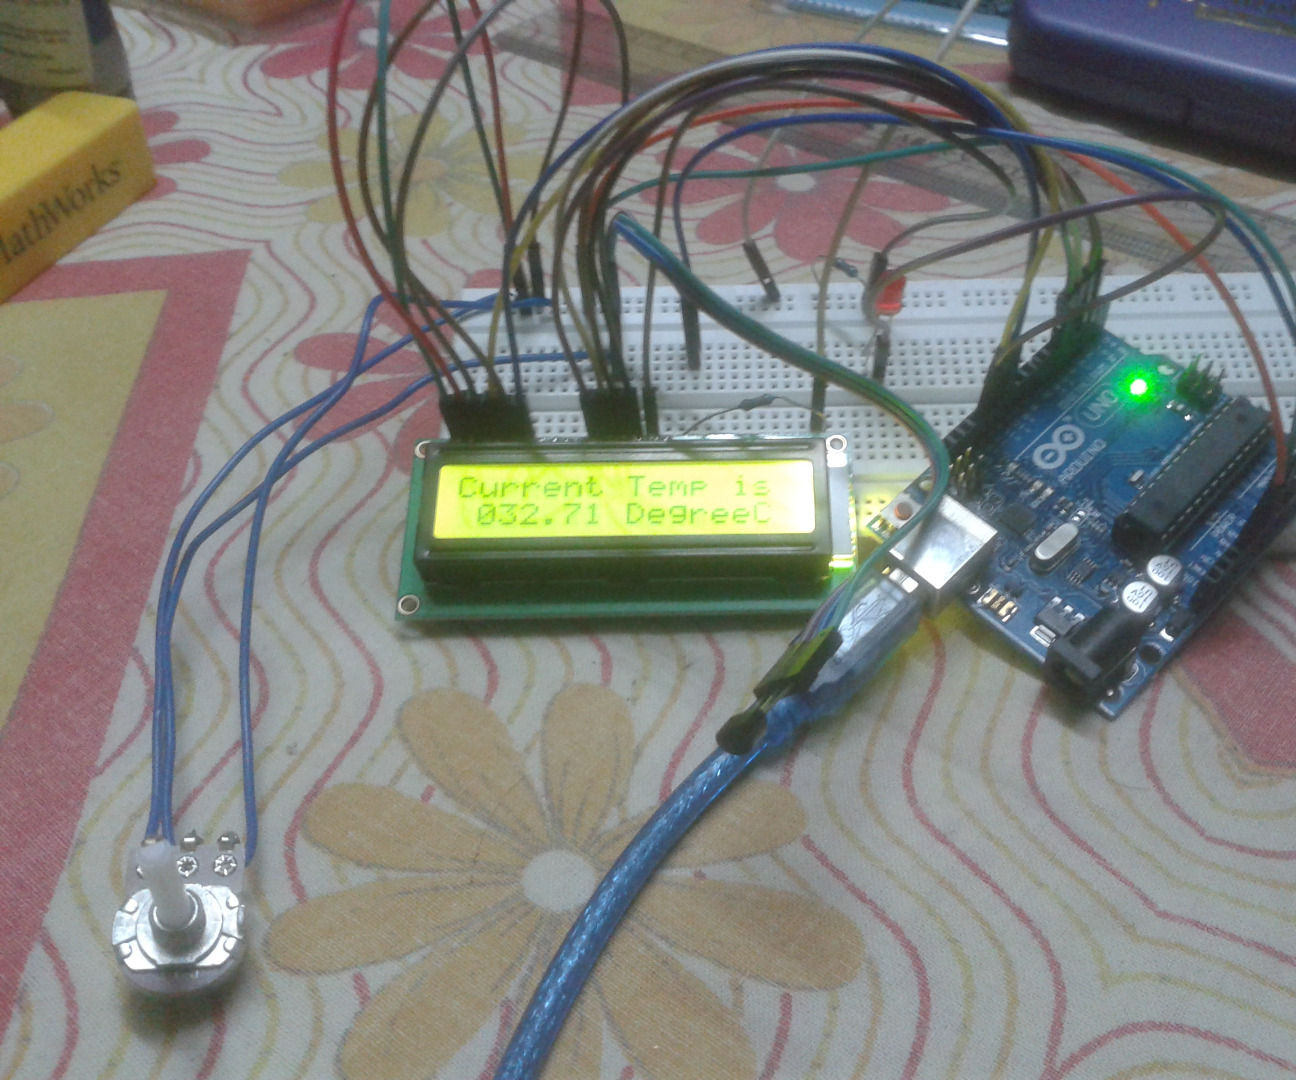 Sense Room Temperature and Display in LCD using Simulink and Arduino UNO